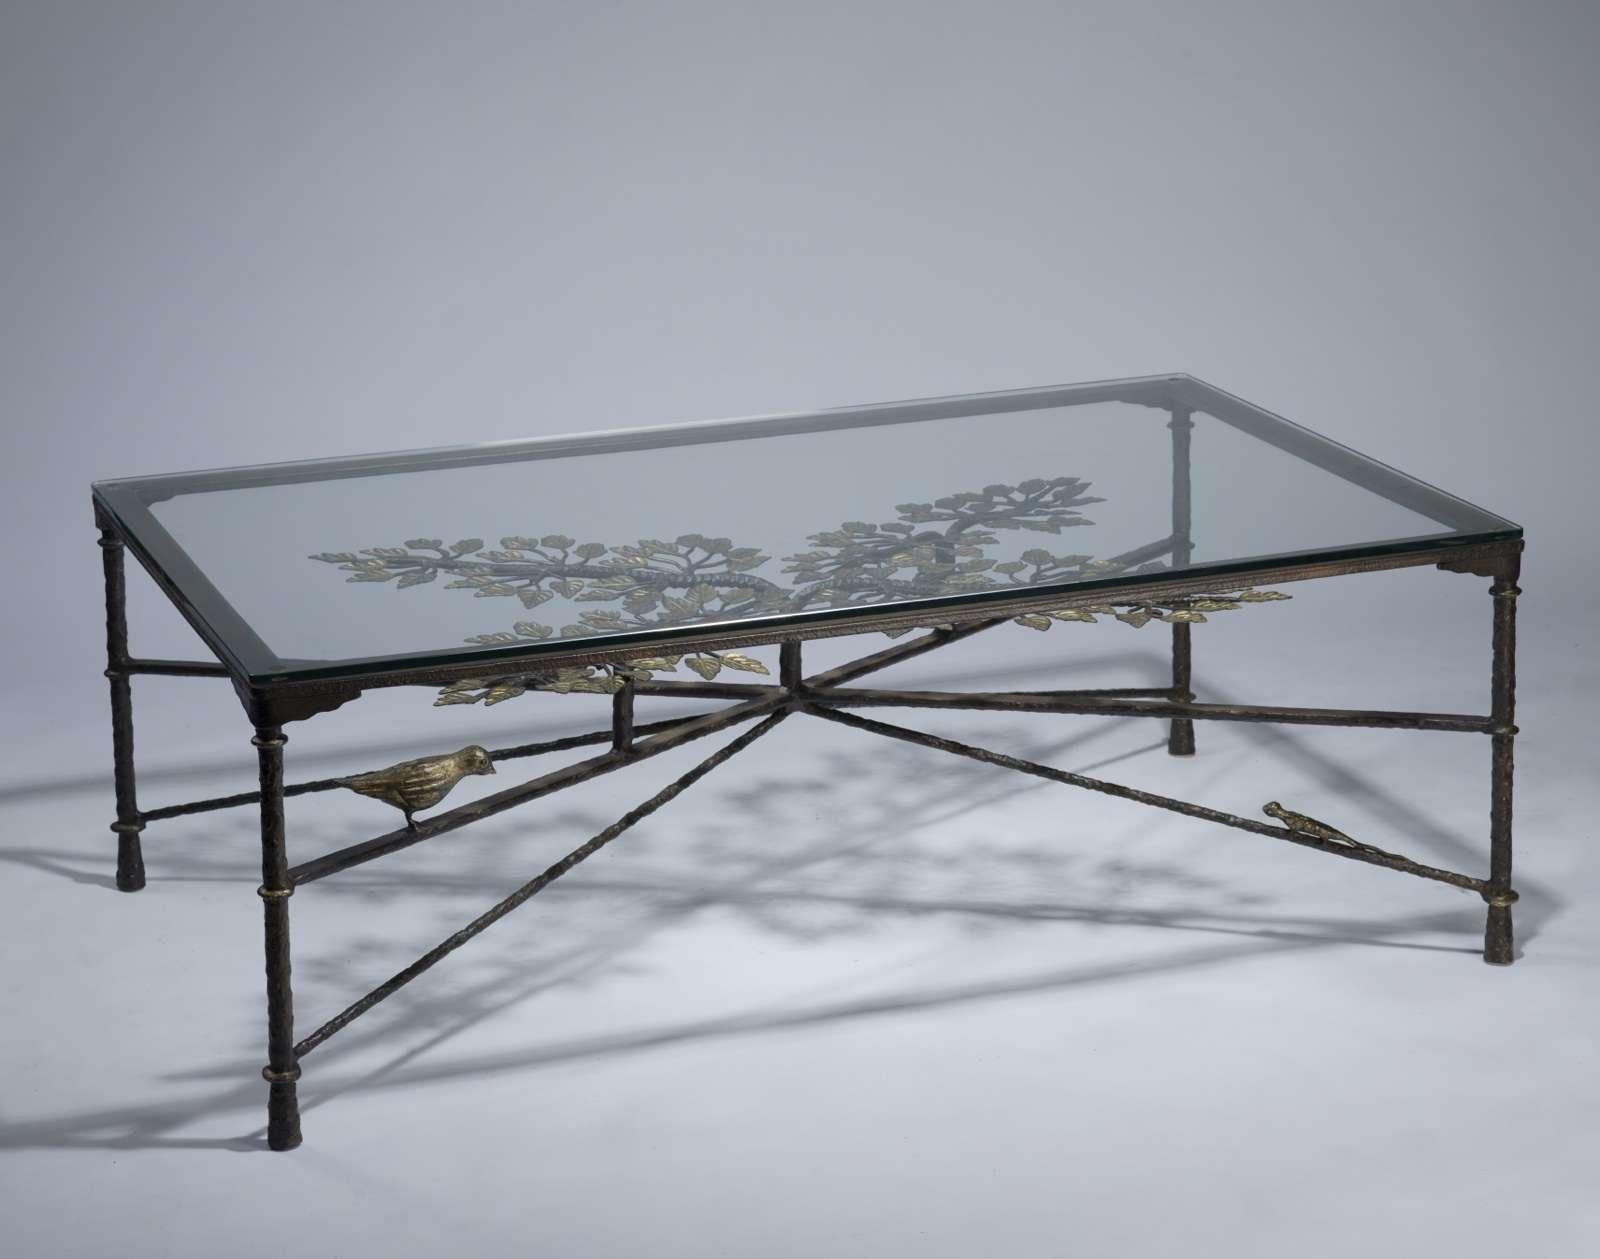 Wrought Iron ' Tree Of Life' Coffee Table In Brown Bronze Regarding Recent Bronze Coffee Table Glass Top (View 2 of 20)